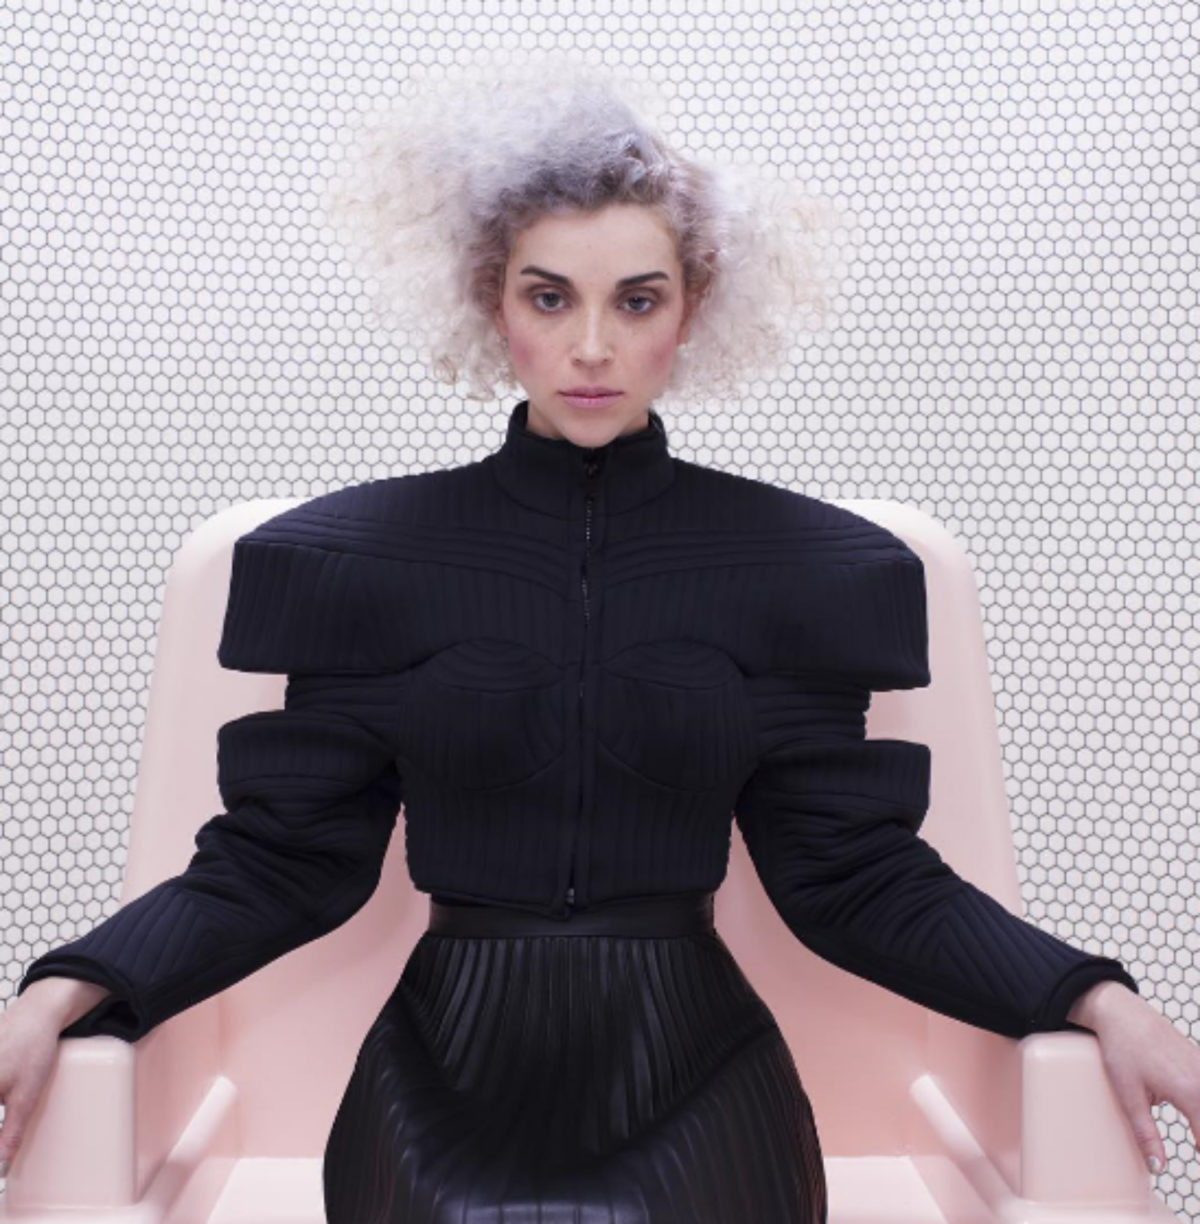 FOLLOWING A 2-YEAR SILENCE, ST VINCENT DEBUTS NEW TRACK